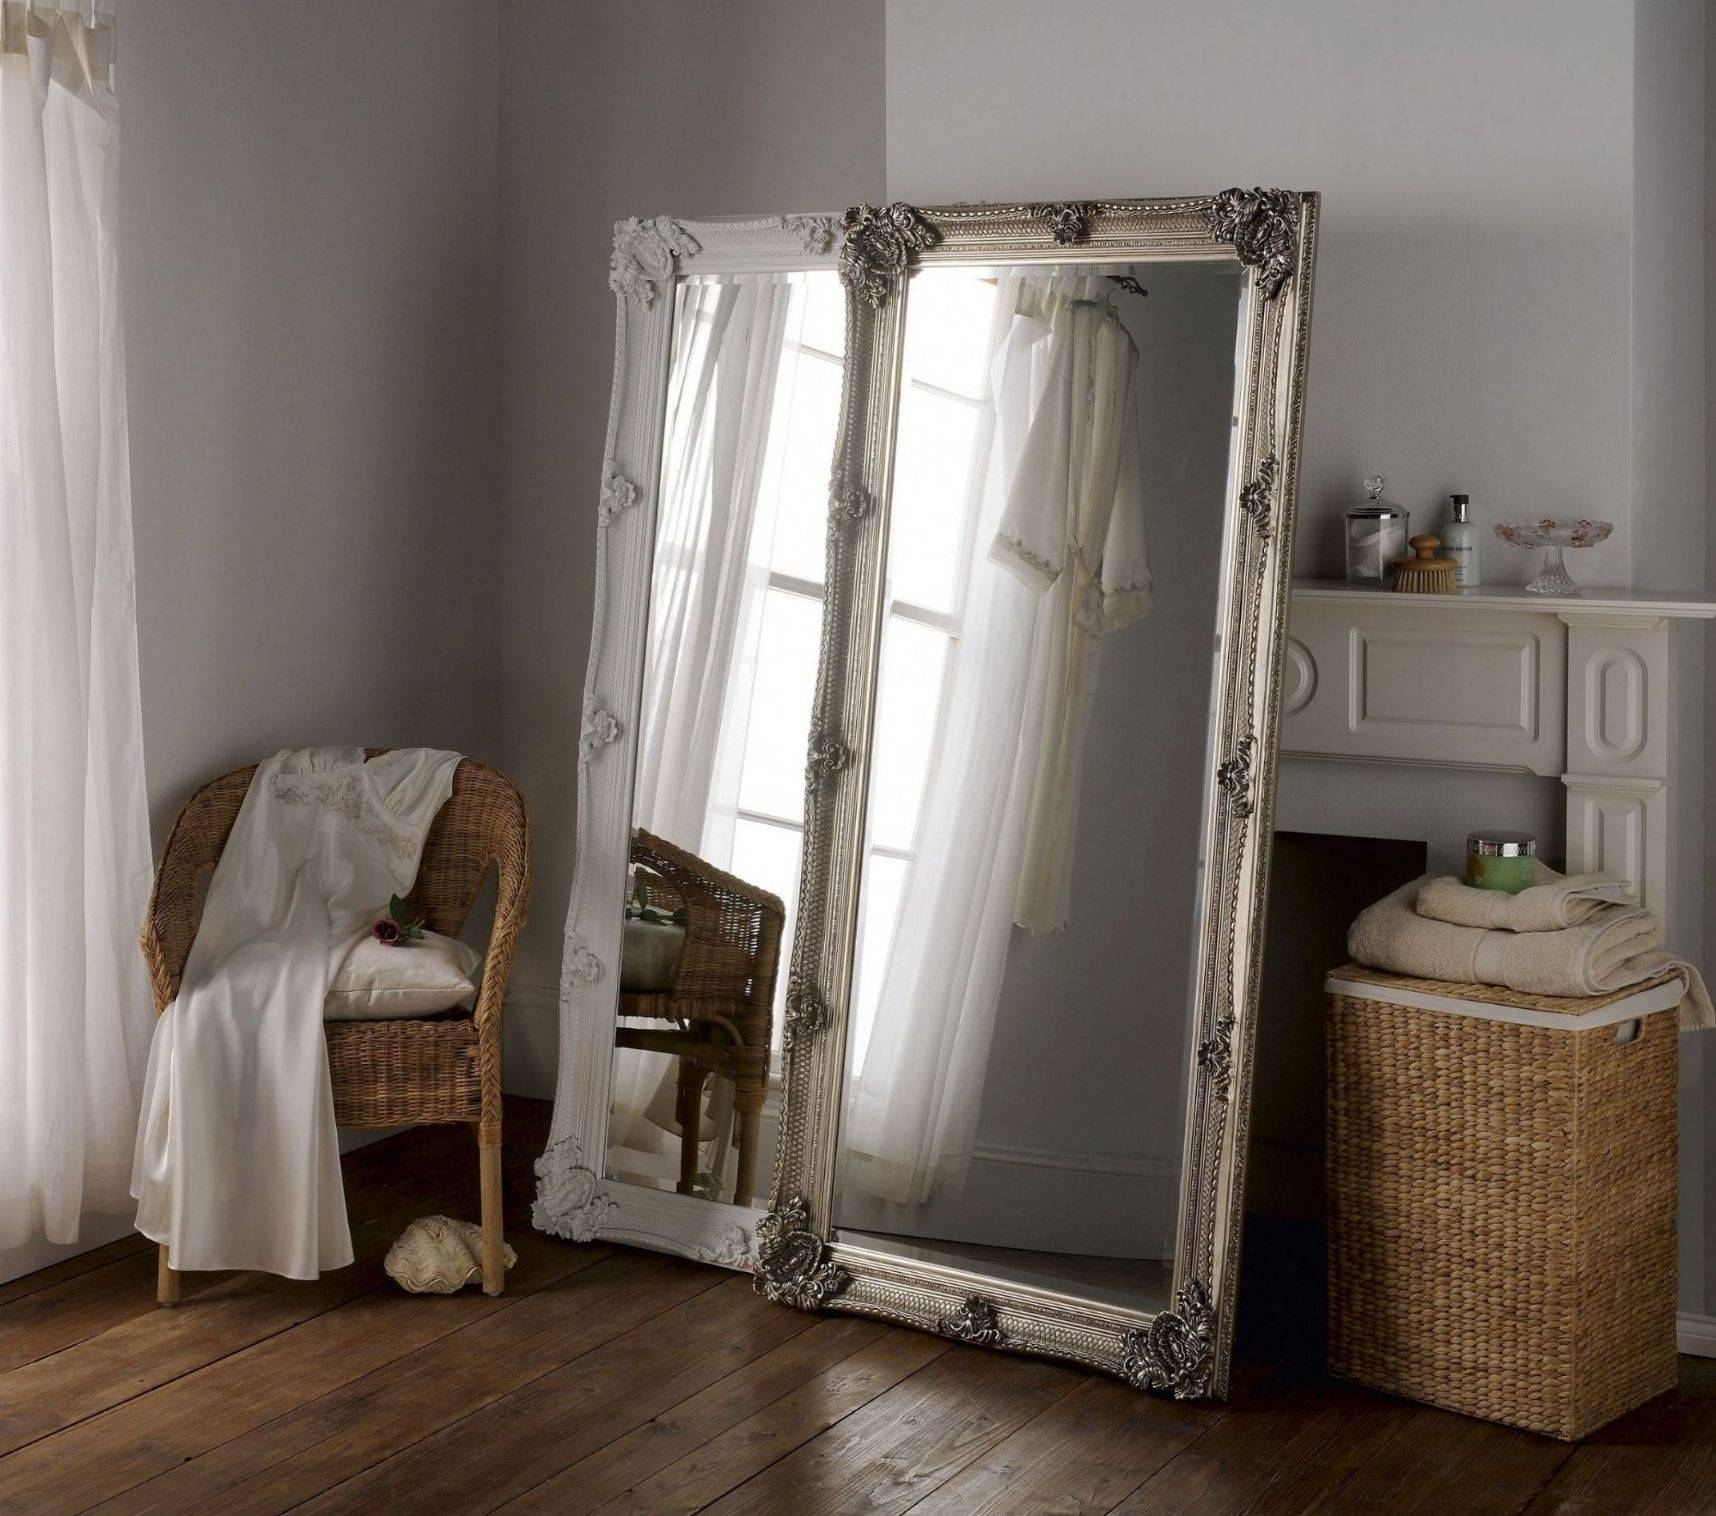 Large Leaning Wall Mirror | Vanity Decoration Within Oversized Mirrors (View 10 of 15)